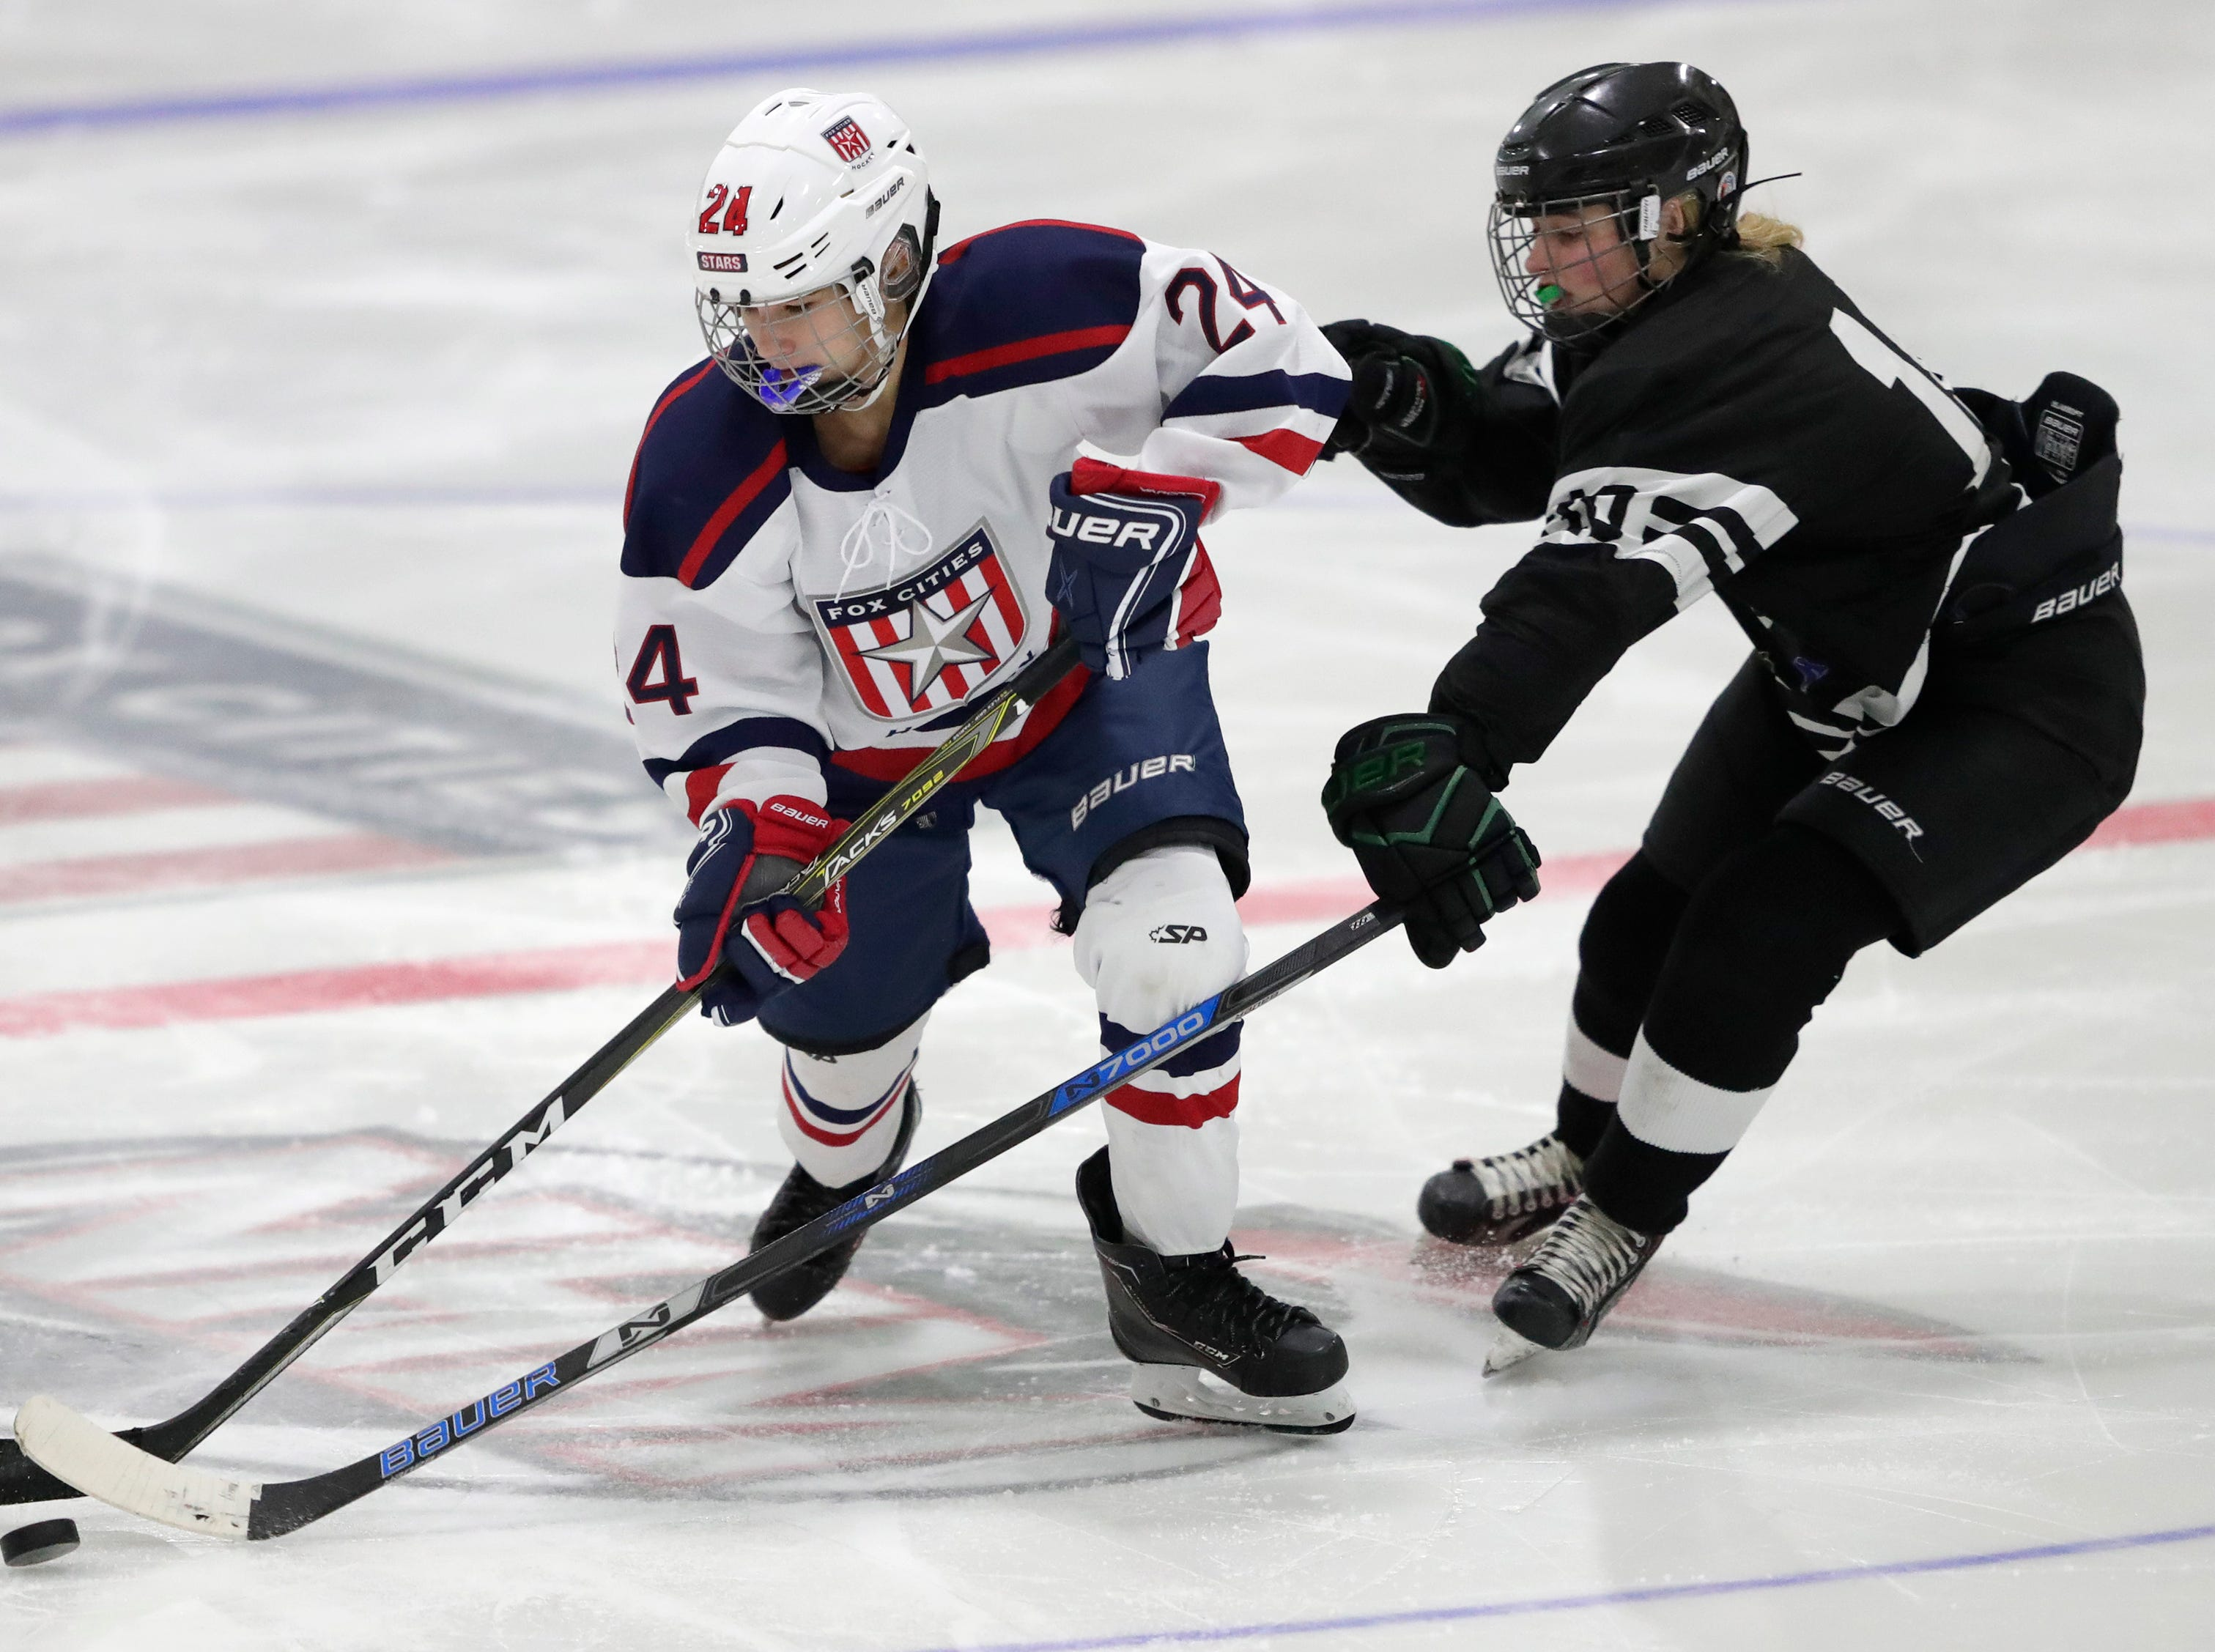 Fox Cities Stars' Hanna Hiltunen (24) controls the puck against the Warbirds' Jenna Kirschbaum (10) during their girls hockey game Thursday, January 10, 2019, at Tri-County Ice Arena in Fox Crossing, Wis. 